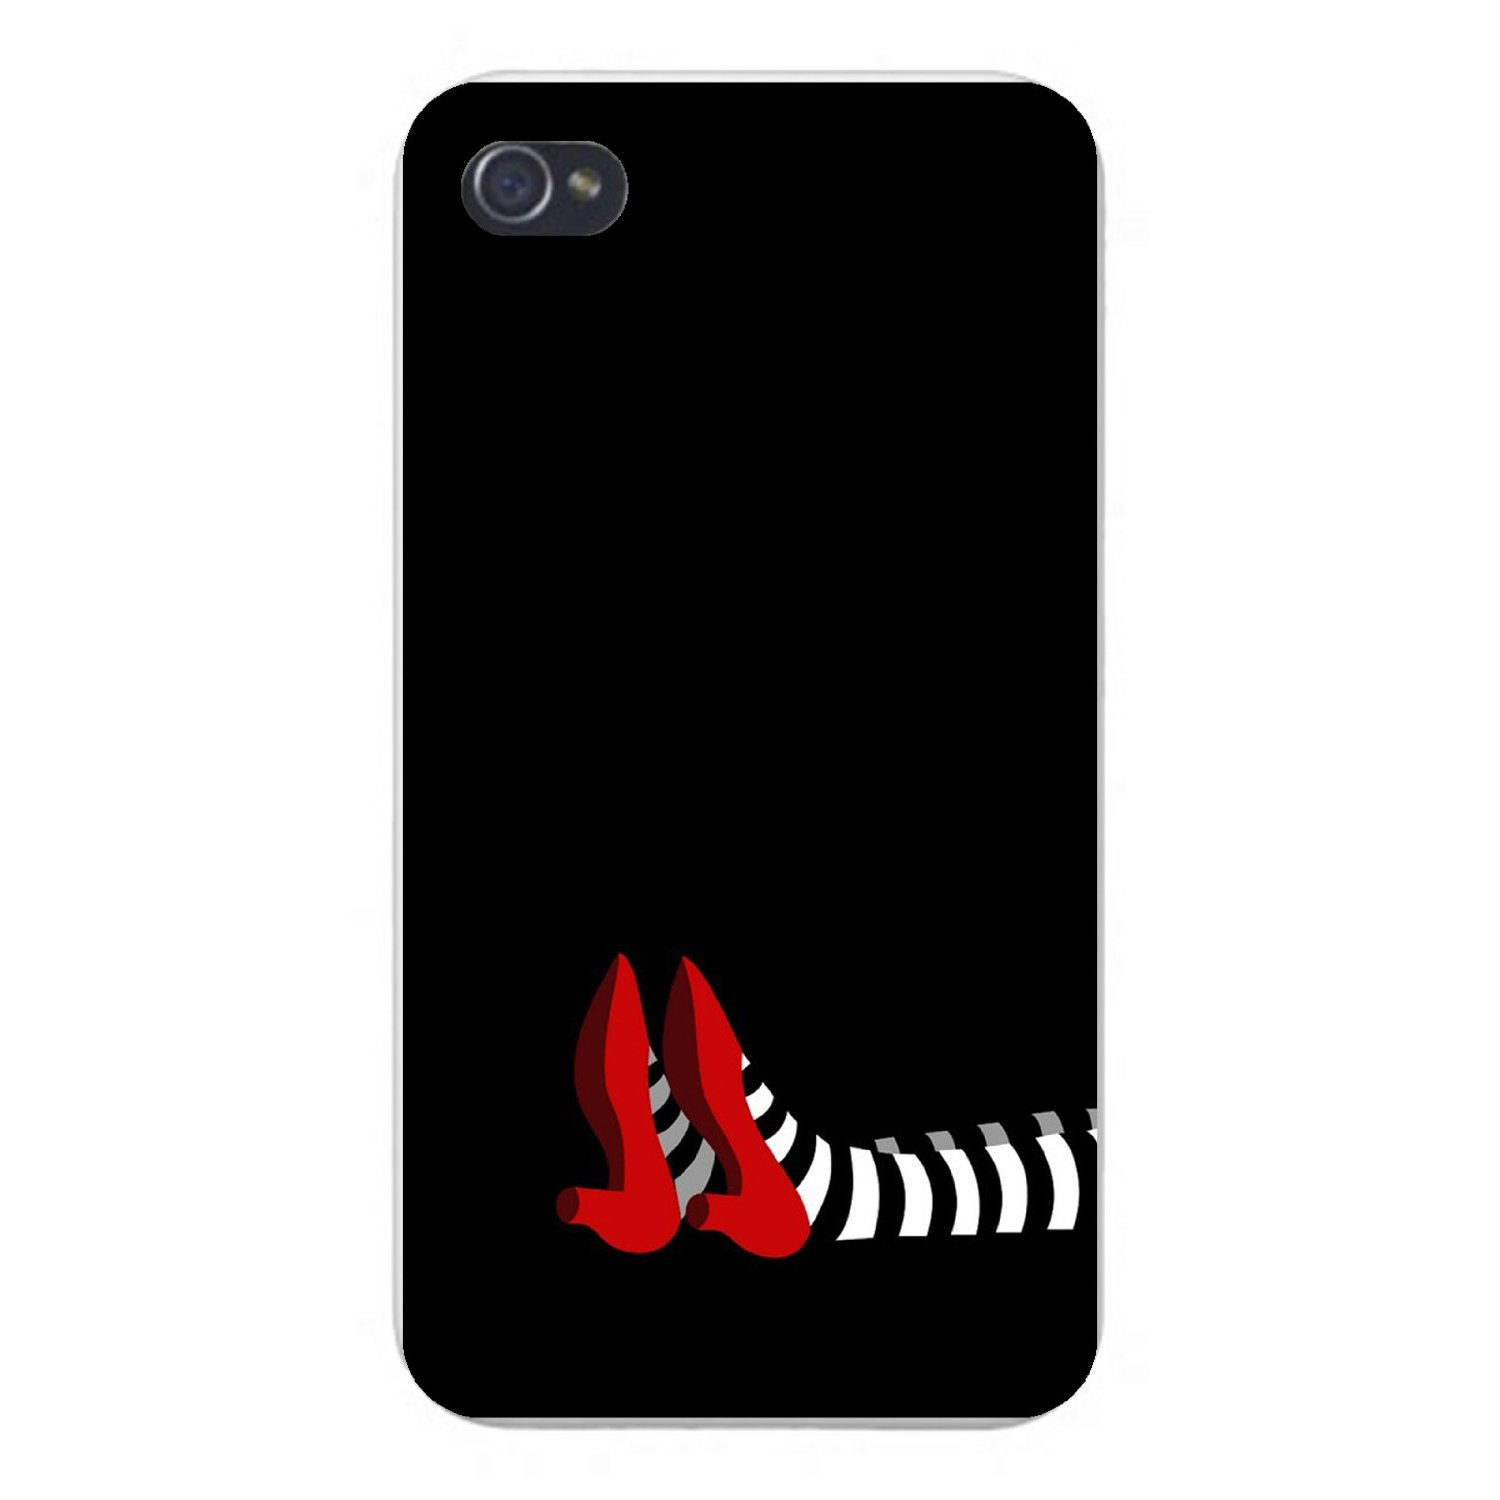 Wicked Witch Socks and Ruby Red Shoes Case ($14) for iPhone 5